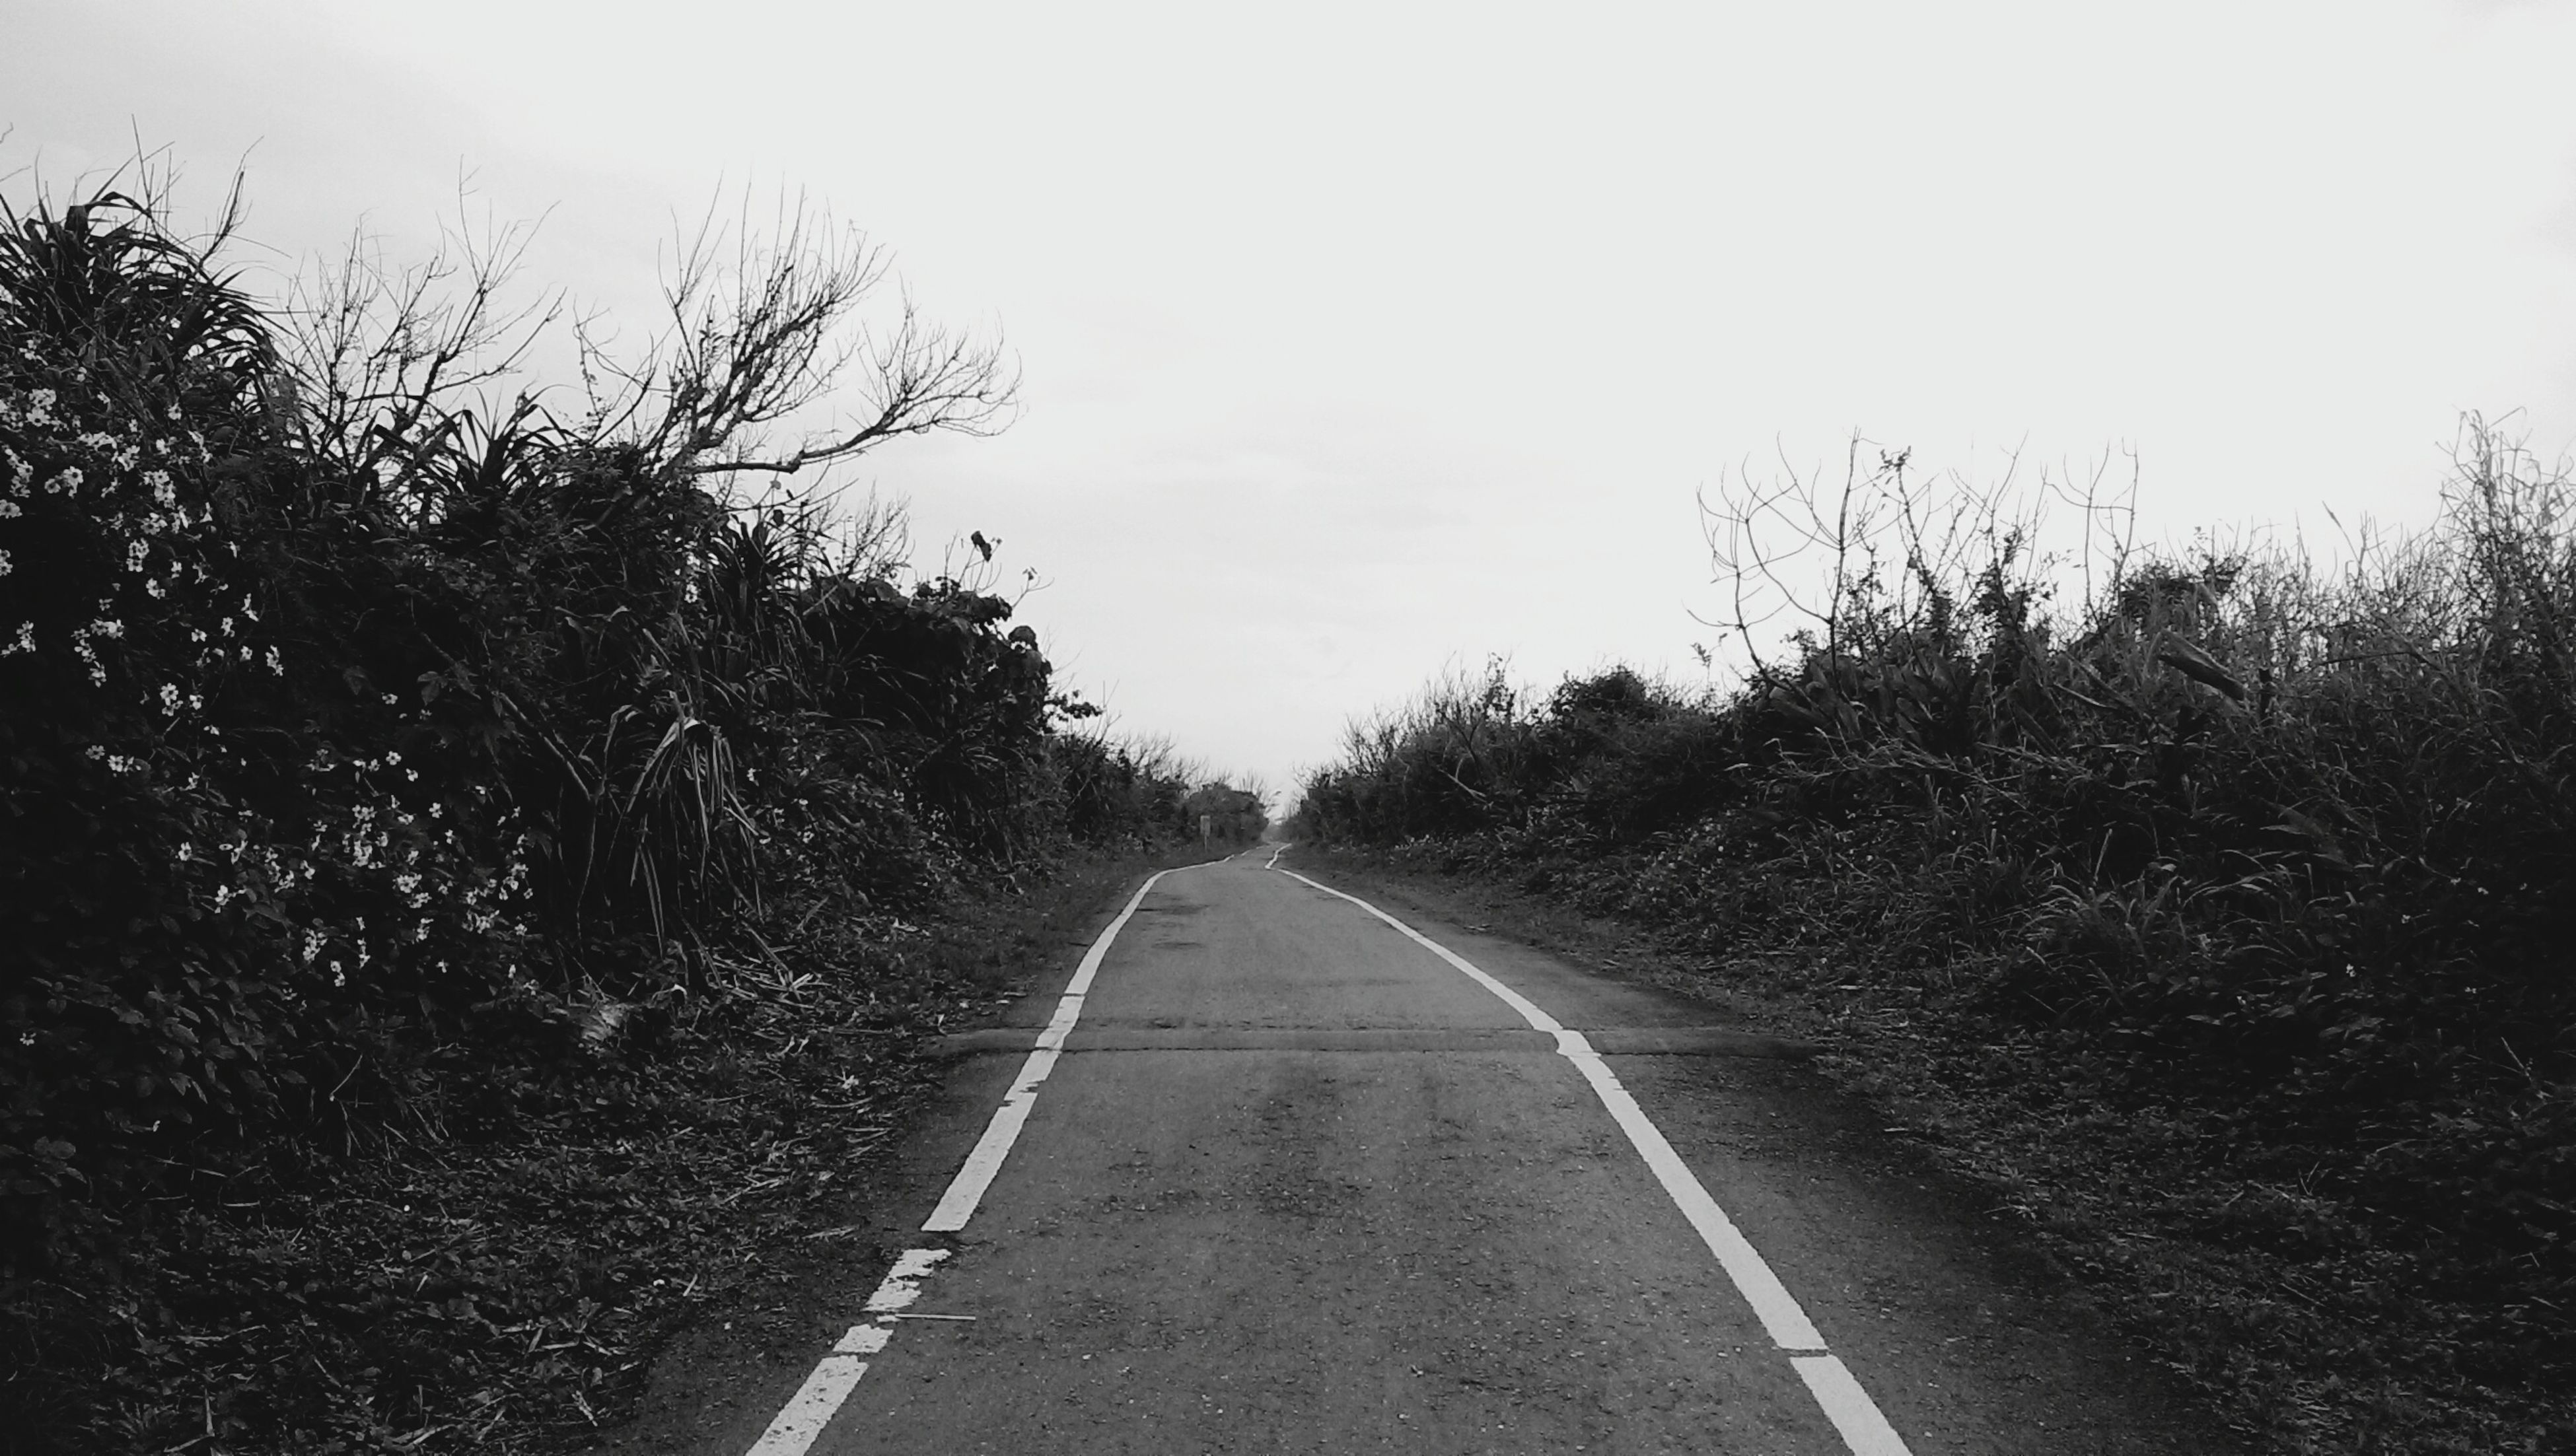 the way forward, diminishing perspective, vanishing point, transportation, road, road marking, tree, empty road, sky, clear sky, long, country road, empty, tranquility, tranquil scene, asphalt, nature, outdoors, no people, landscape